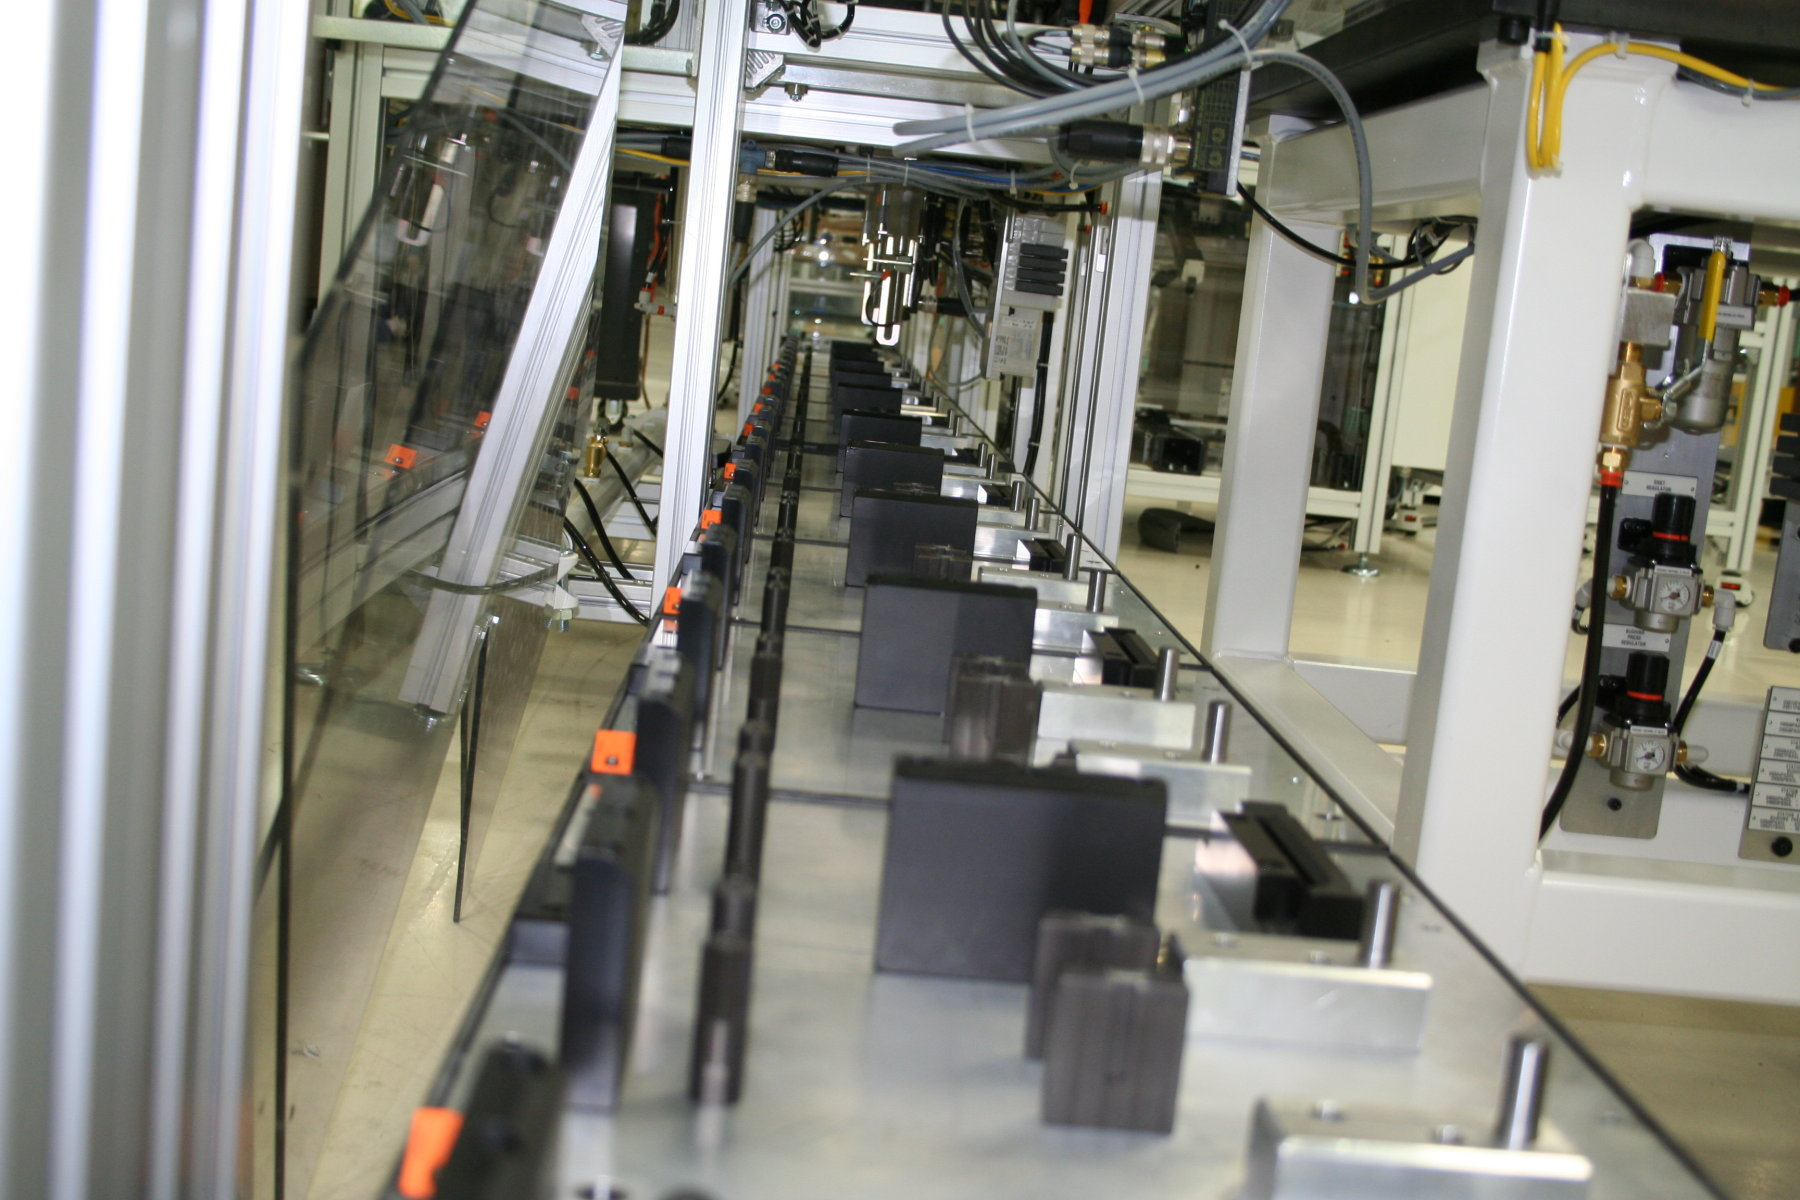 Assembly Line Systems : Modular conveyor technologies give manufacturers an edge